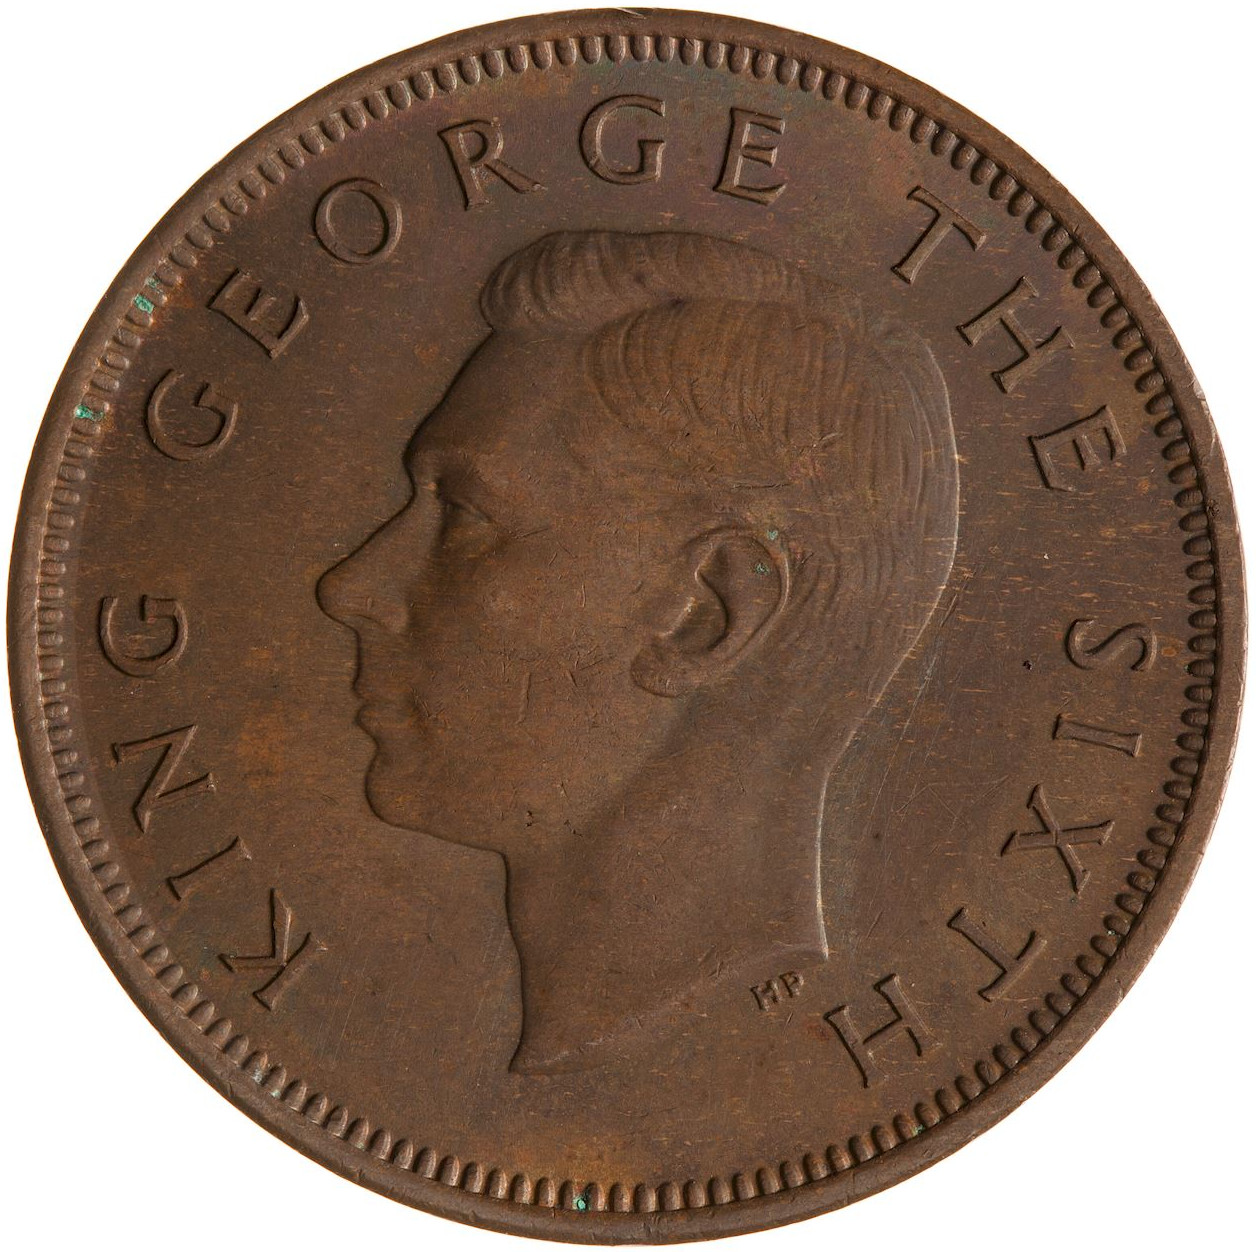 Halfpenny 1950: Photo Coin - 1/2 Penny, New Zealand, 1950